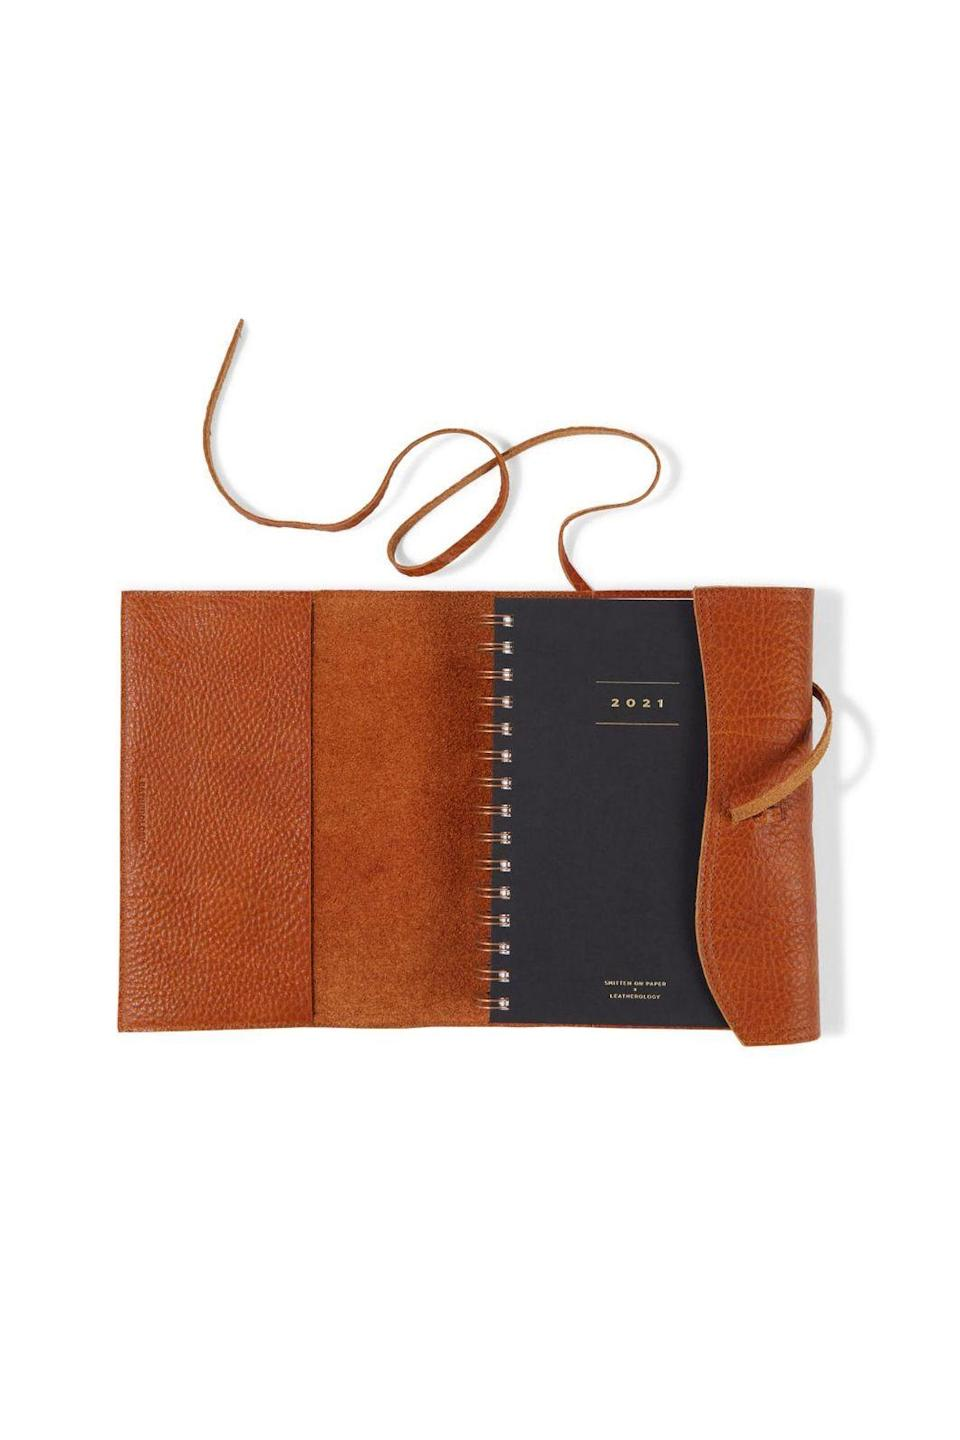 """<p><strong>Leatherology</strong></p><p><strong>$115.00</strong></p><p><a href=""""https://www.leatherology.com/wrap-planner-tan-leather-whiskey/"""" rel=""""nofollow noopener"""" target=""""_blank"""" data-ylk=""""slk:SHOP IT"""" class=""""link rapid-noclick-resp"""">SHOP IT</a></p><p>Leatherology's wrap 2021 planner was made for those who can't leave home without their to-do list. Customize the vegan leather cover with a chic monogram on the front, and keep it for years to come—just swap the insert when 2022 comes around.</p>"""